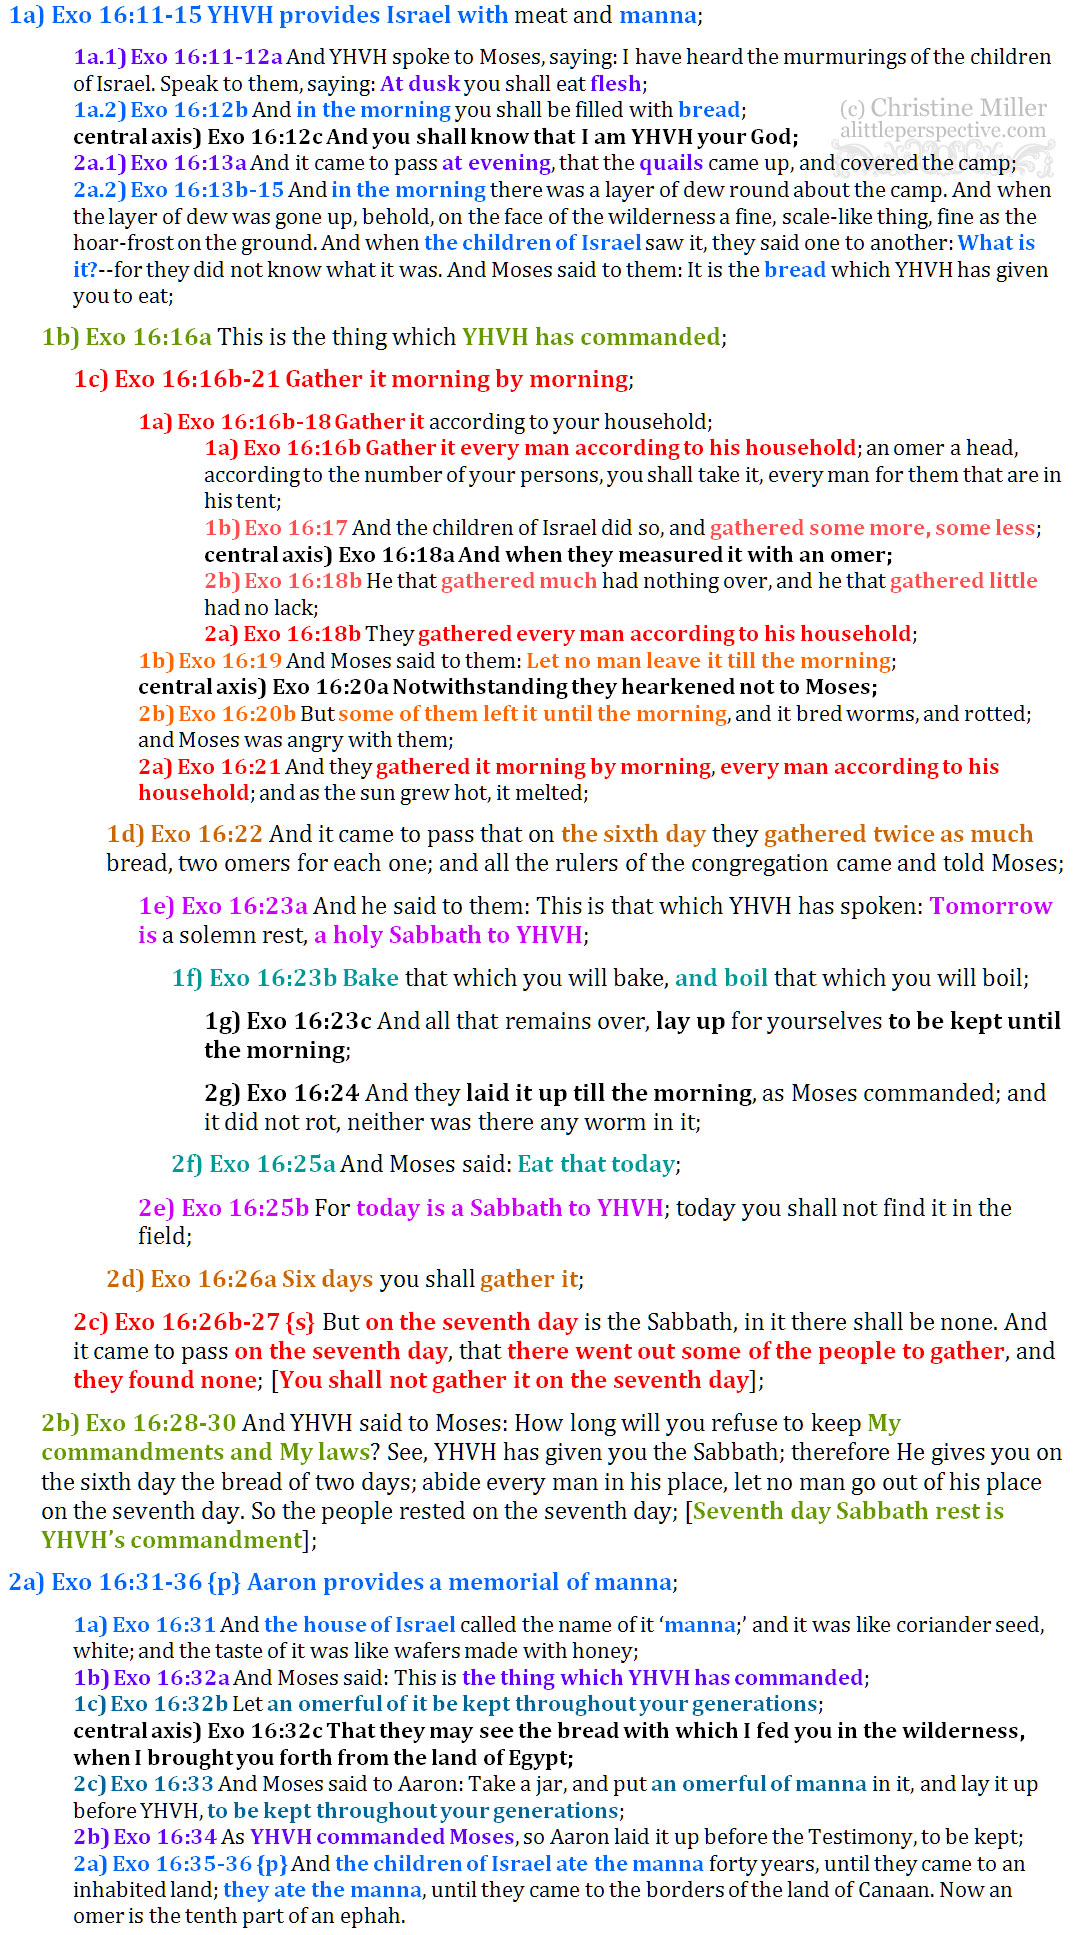 Exo 16:11-36 reverse parallelism | christine's bible study at alittleperspective.com